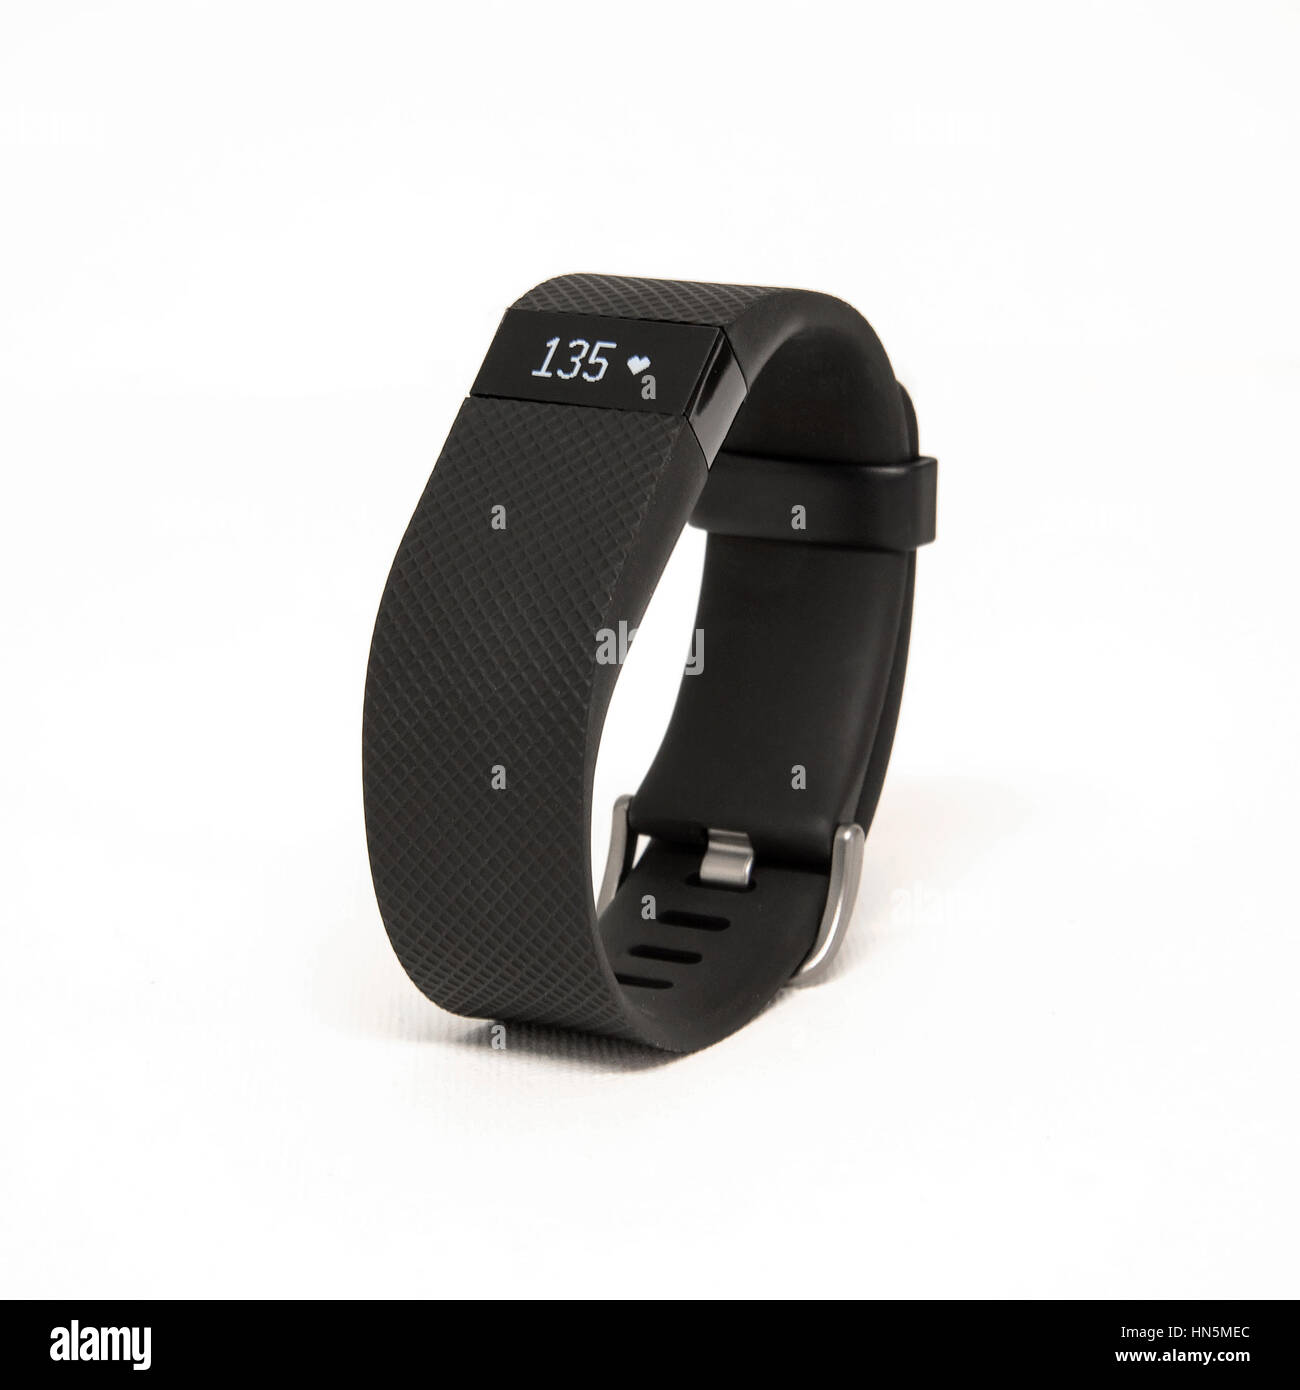 HELSINGBORG, SWEDEN - MARCH 25, 2016: An illustrative editorial image of the Fitbit Charge HR isolated against a - Stock Image